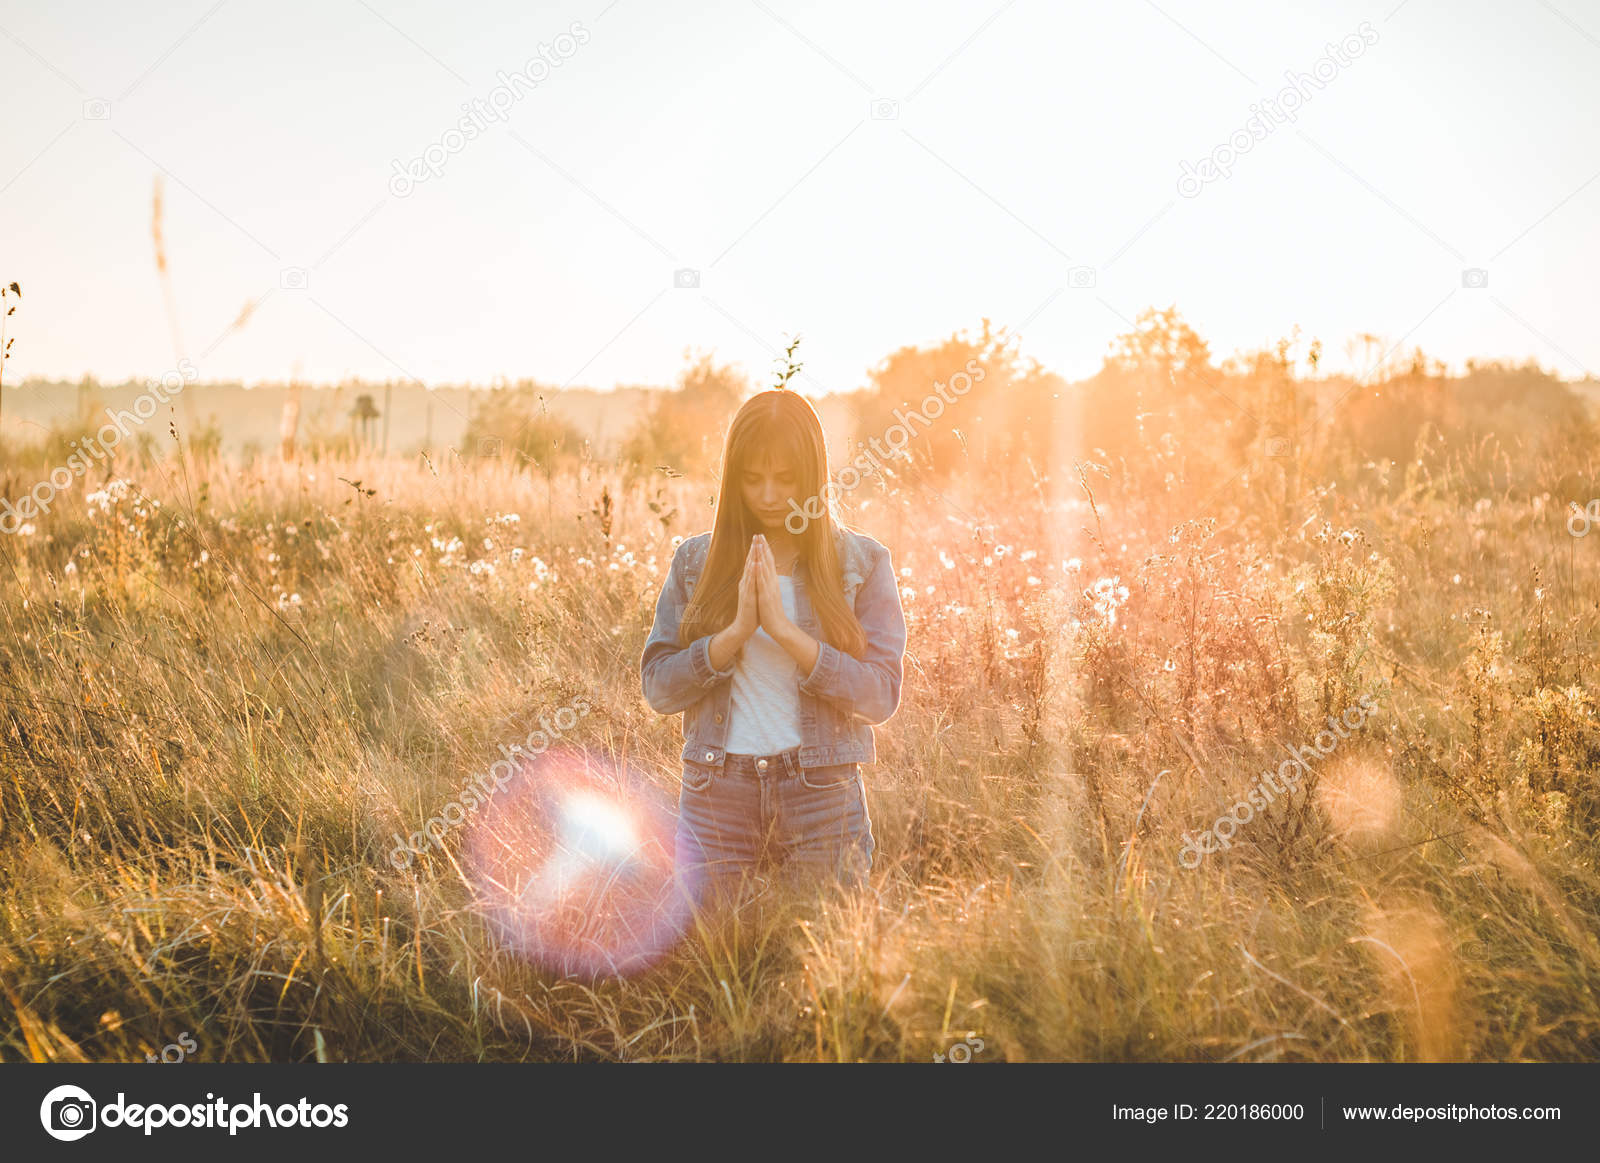 Girl closed her eyes, praying outdoors, Hands folded in